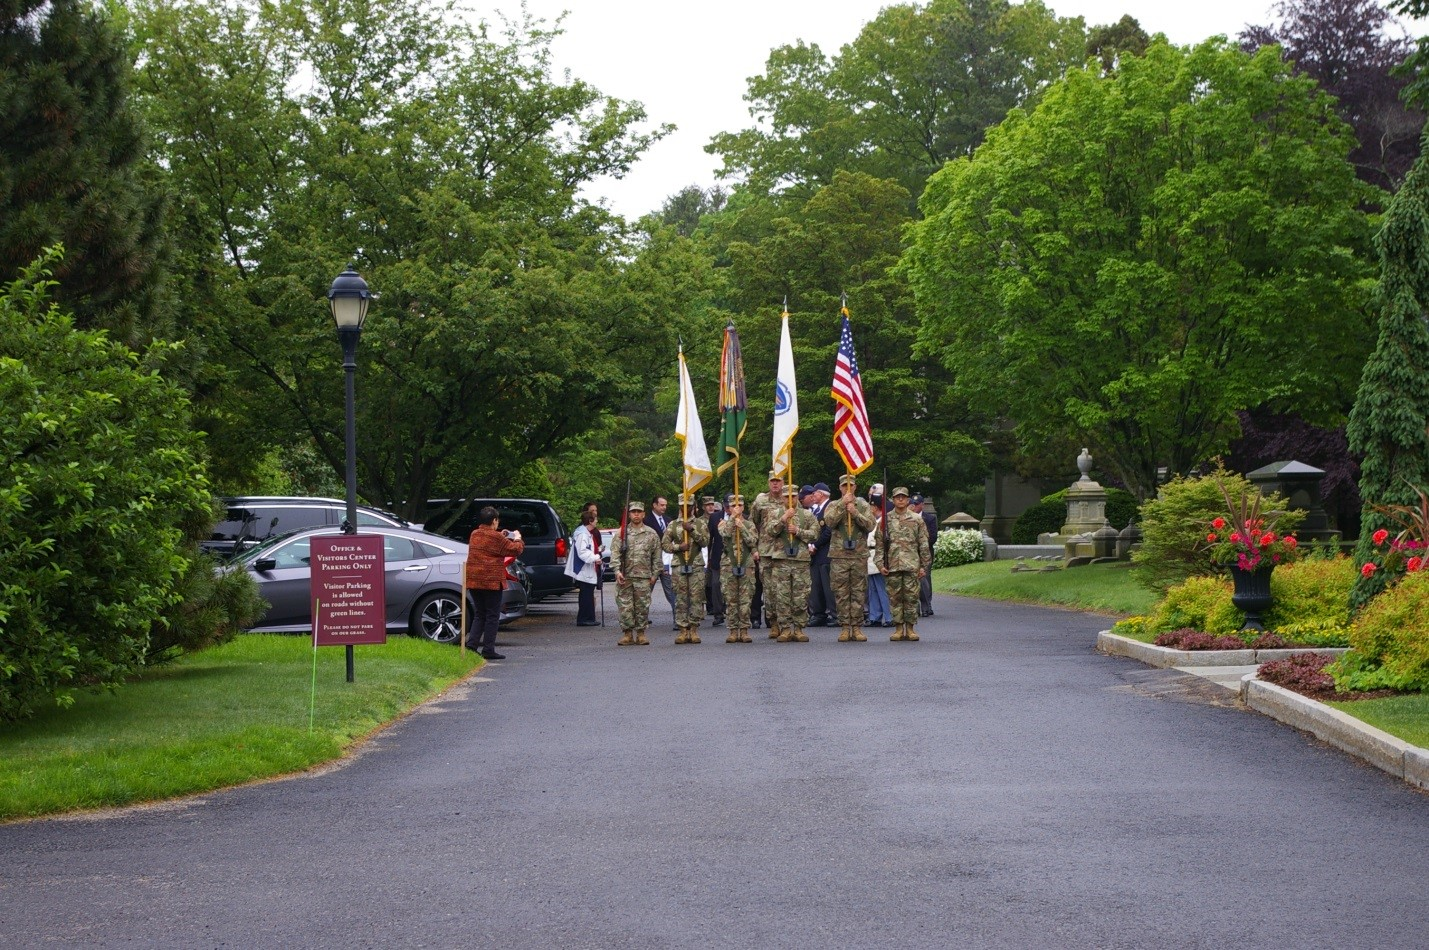 The Color Guard and VAFCC members line-up for the march to the monument.